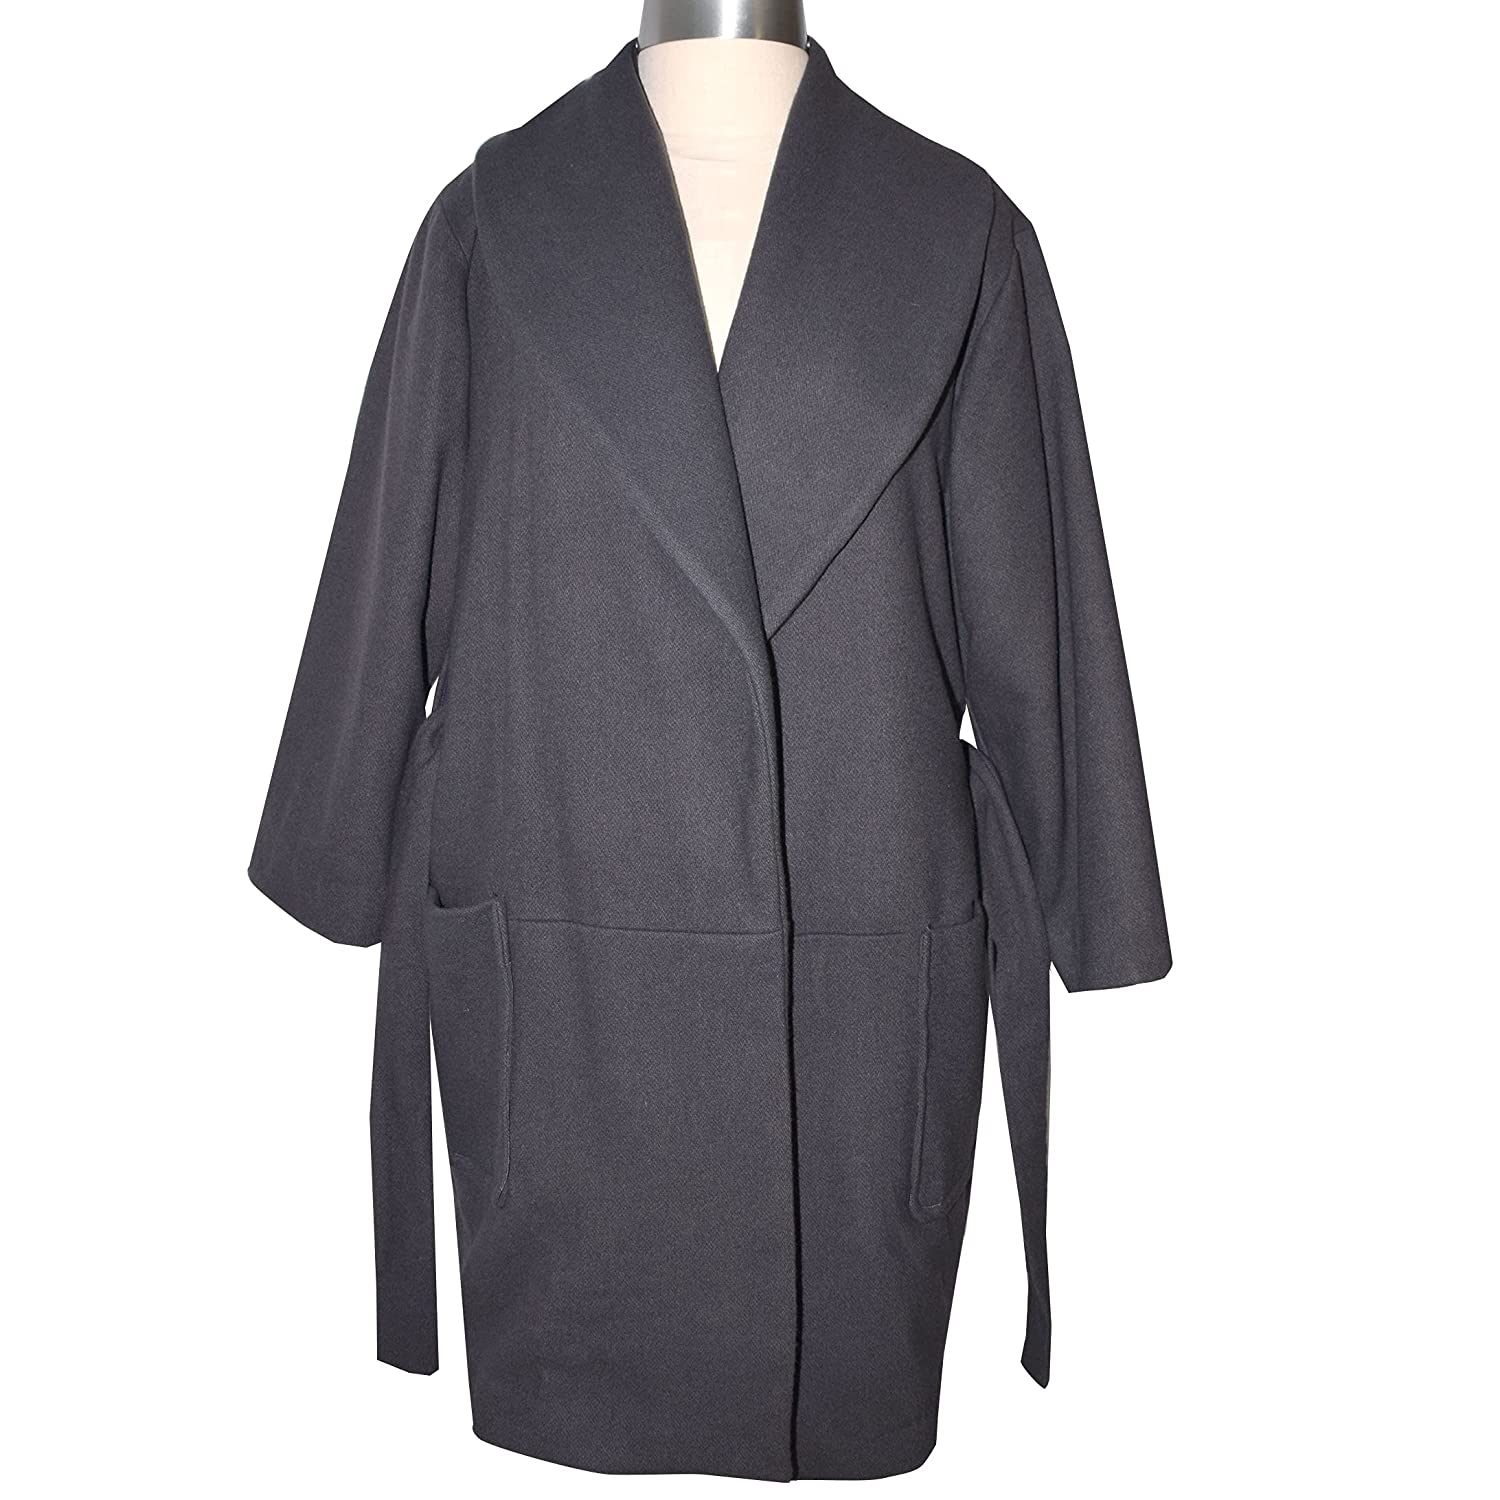 One ! Super beauty product restock quality top! of a Kind Grey Camelhair Blend Full Wool Coat Length High quality